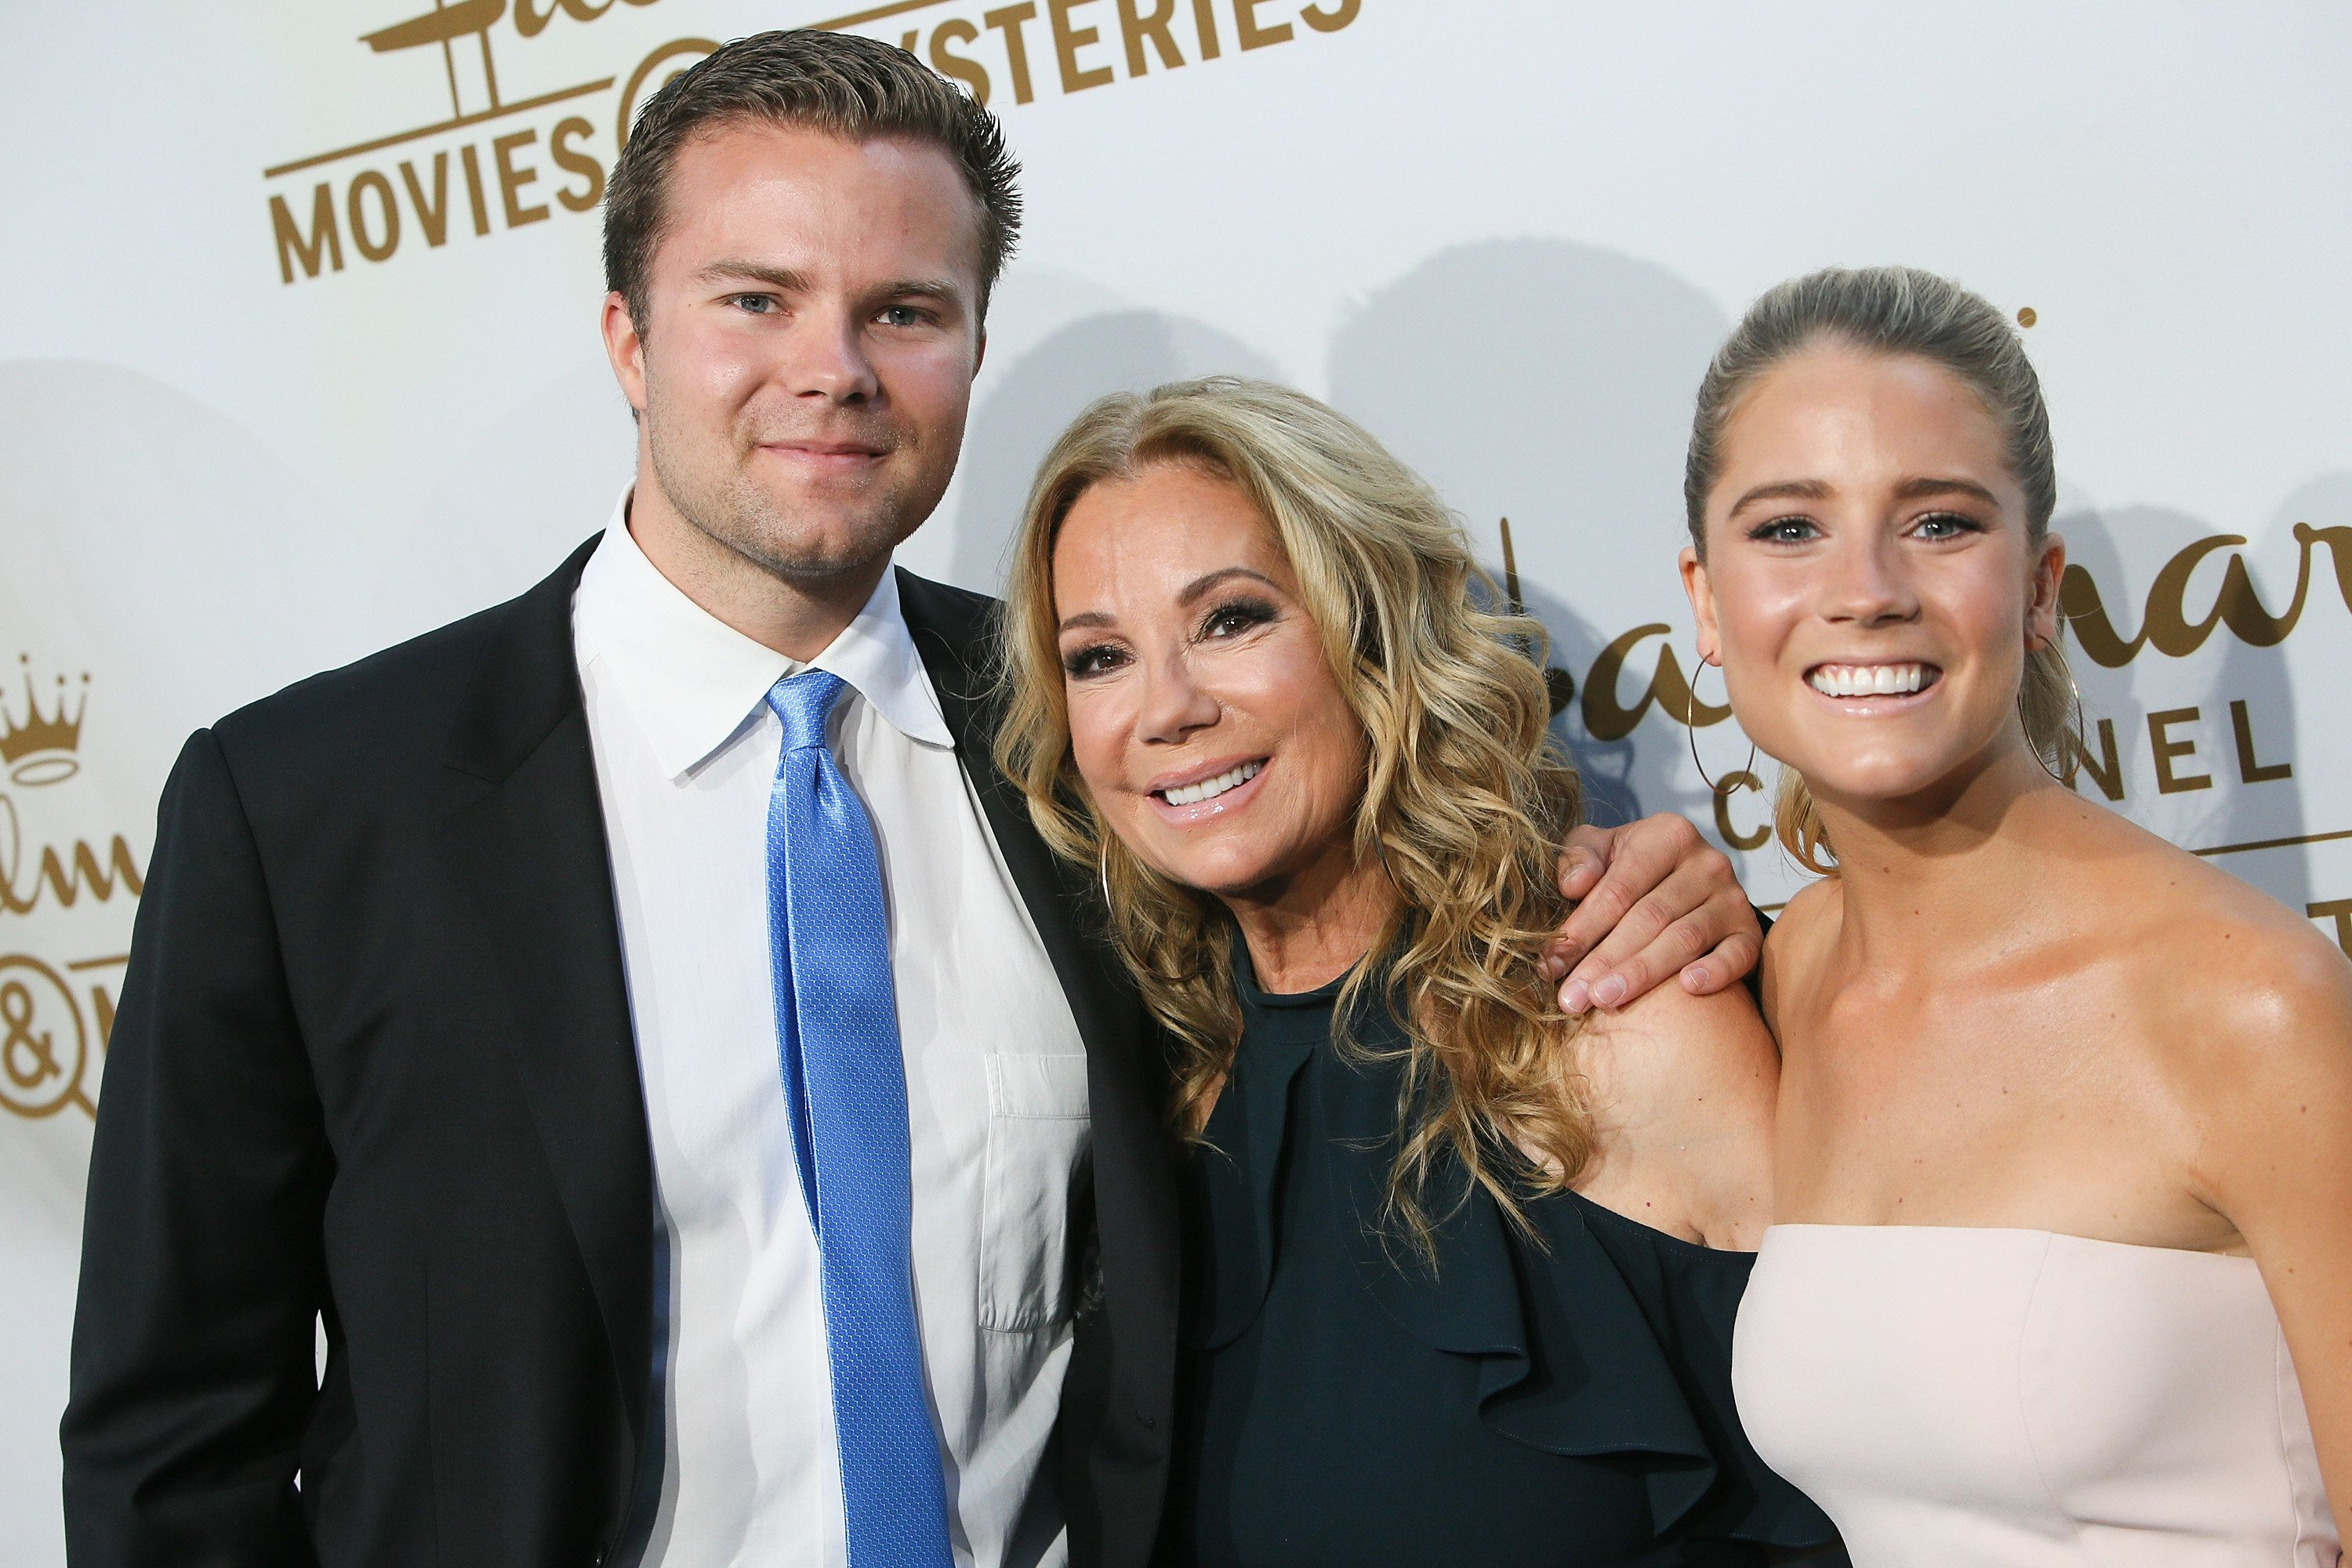 BEVERLY HILLS, CA - JULY 27:  Cody Gifford, Kathie Lee Gifford and Cassidy Erin Gifford attend the Hallmark Channel and Hallmark Movies and Mysteries 2017 Summer TCA Tour on July 27, 2017 in Beverly Hills, California.  (Photo by David Livingston/Getty Images)